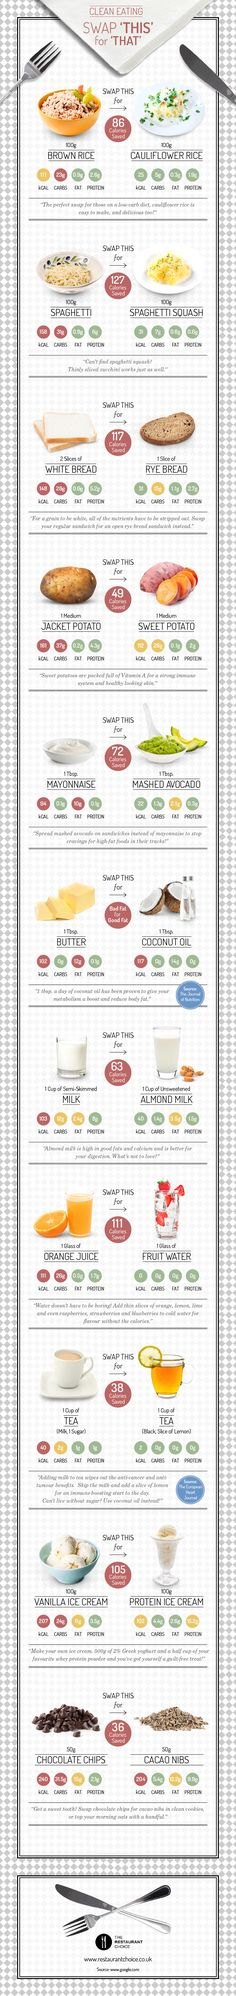 Clean Eating - Swap 'This' For 'That' #infographic